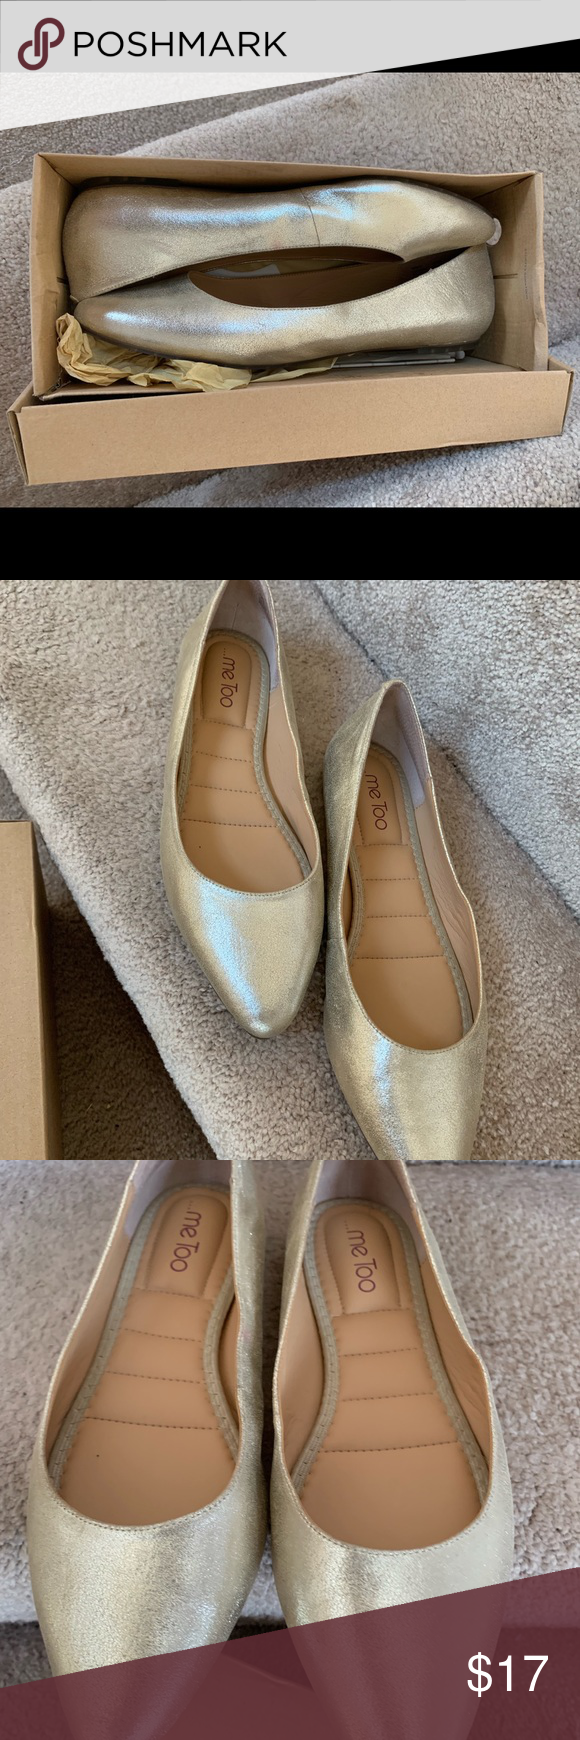 Champagne Gold Ballet Flats Comfortable and beautiful ballet flats with thick cu…